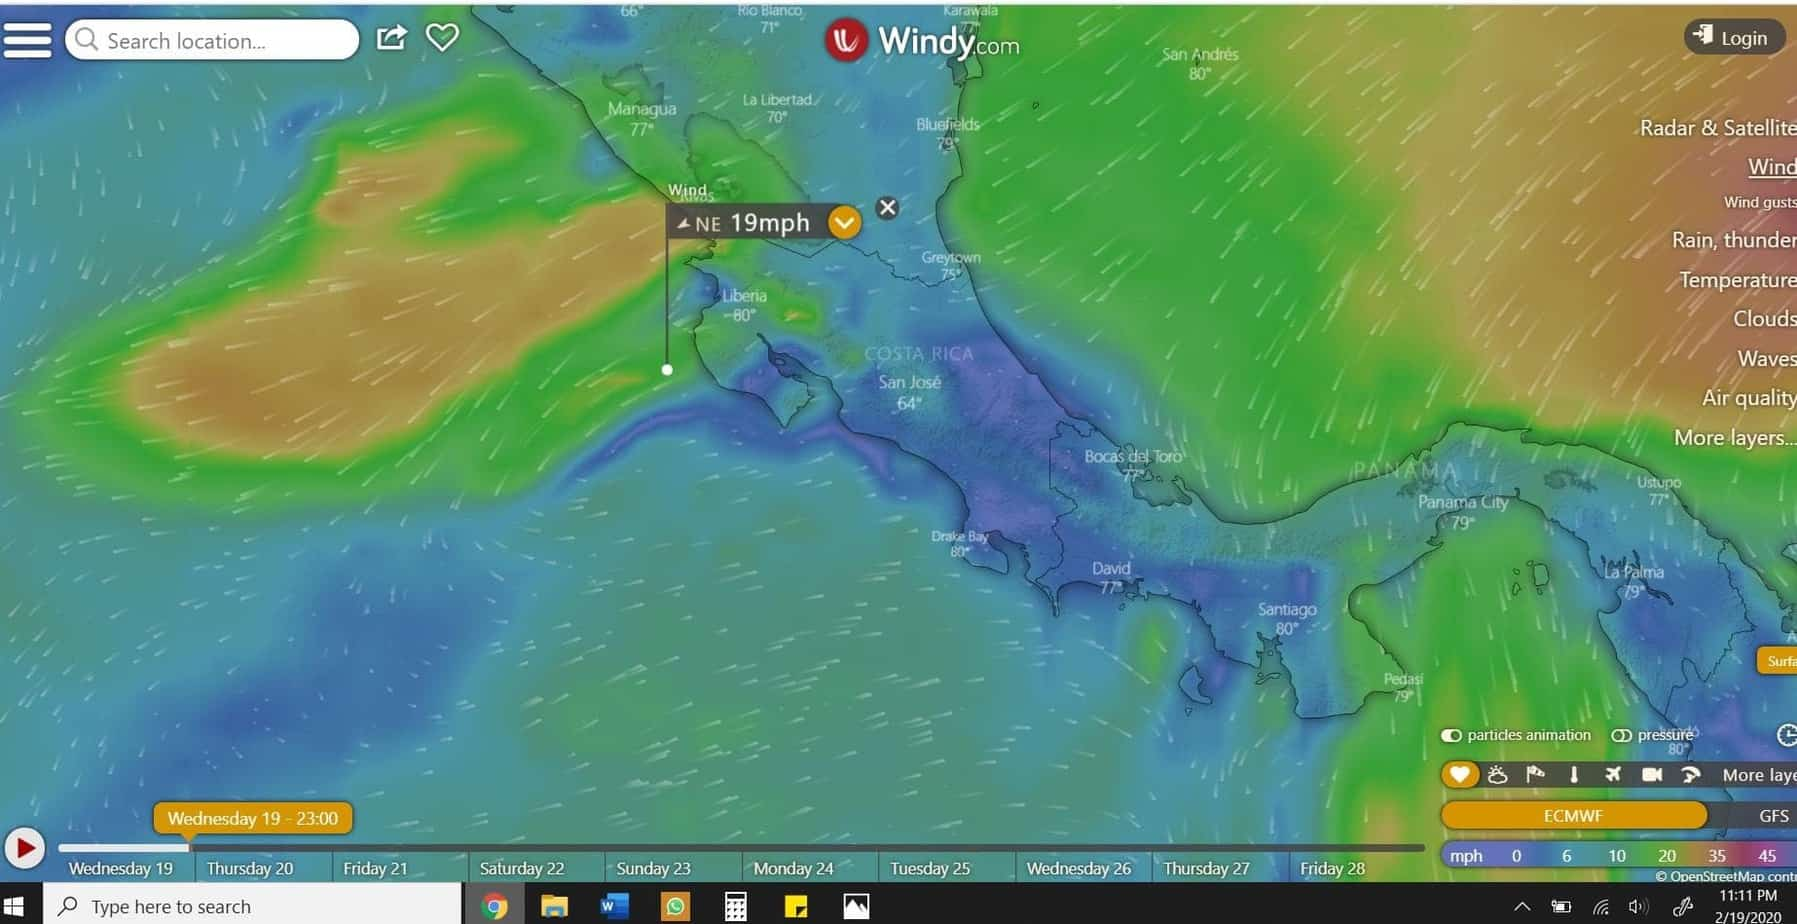 Costa Rica Wind Map for February